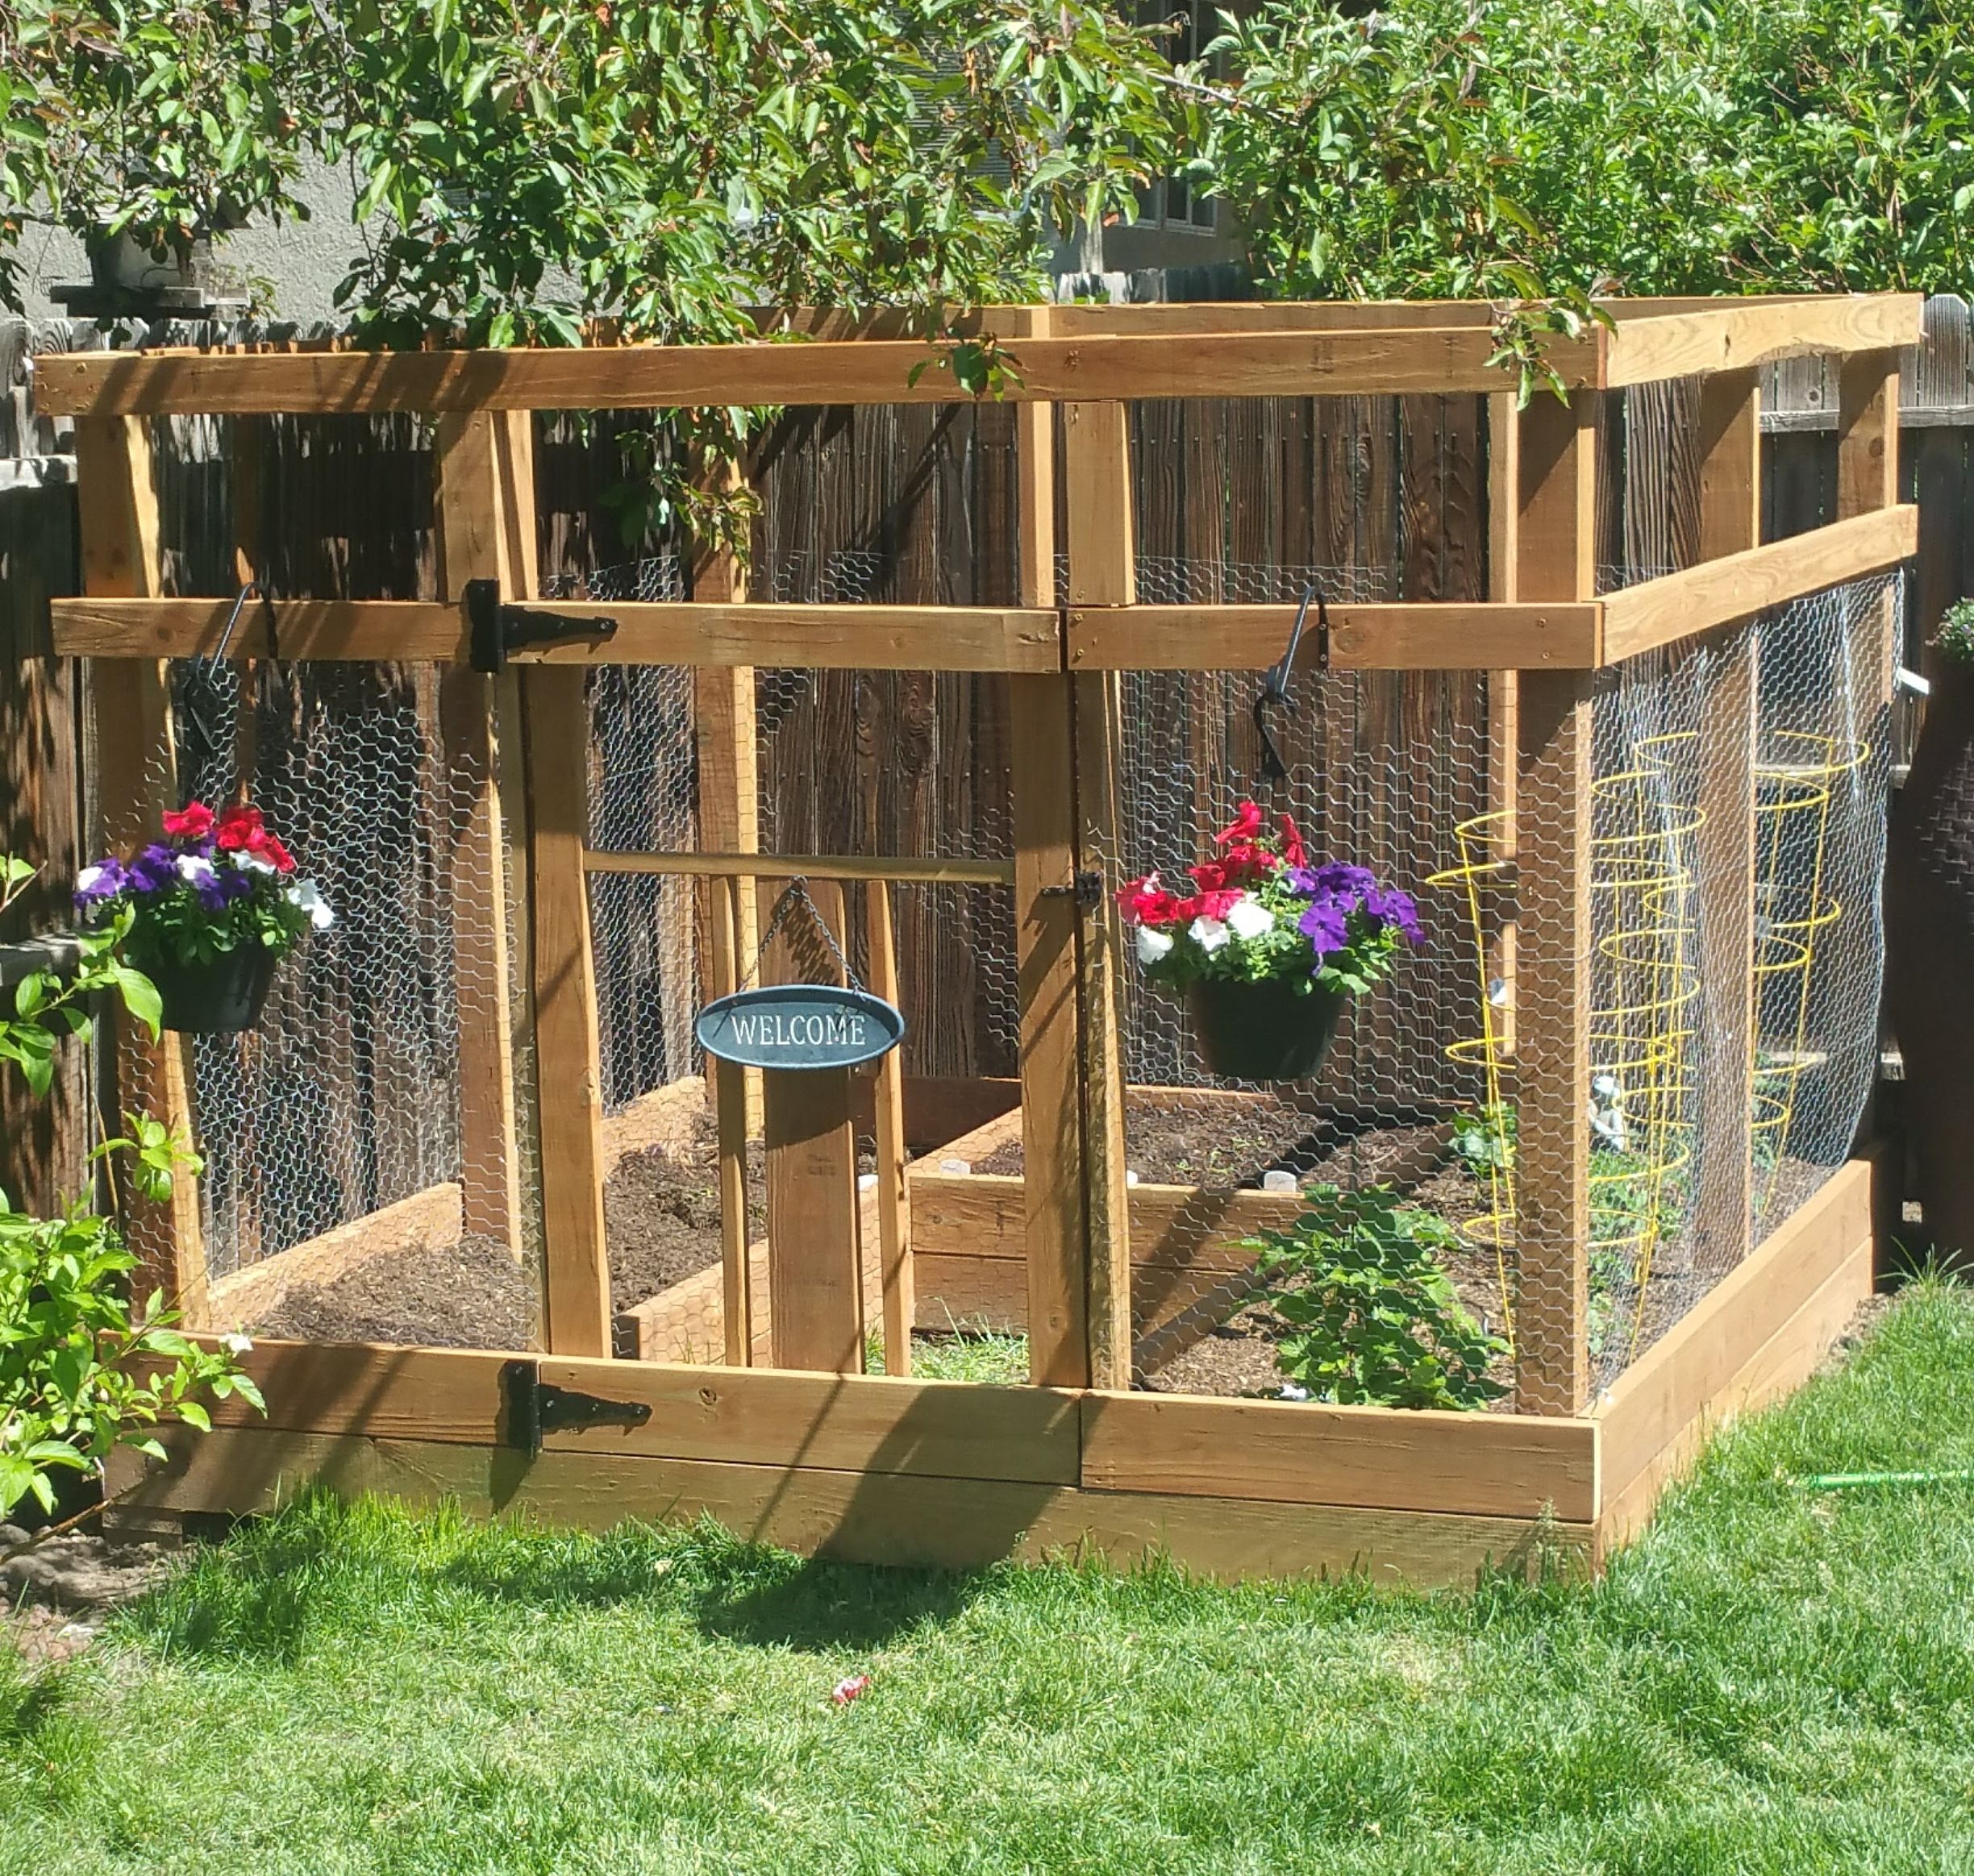 Ana White | Garden Enclosure With Custom Gate   DIY Projects